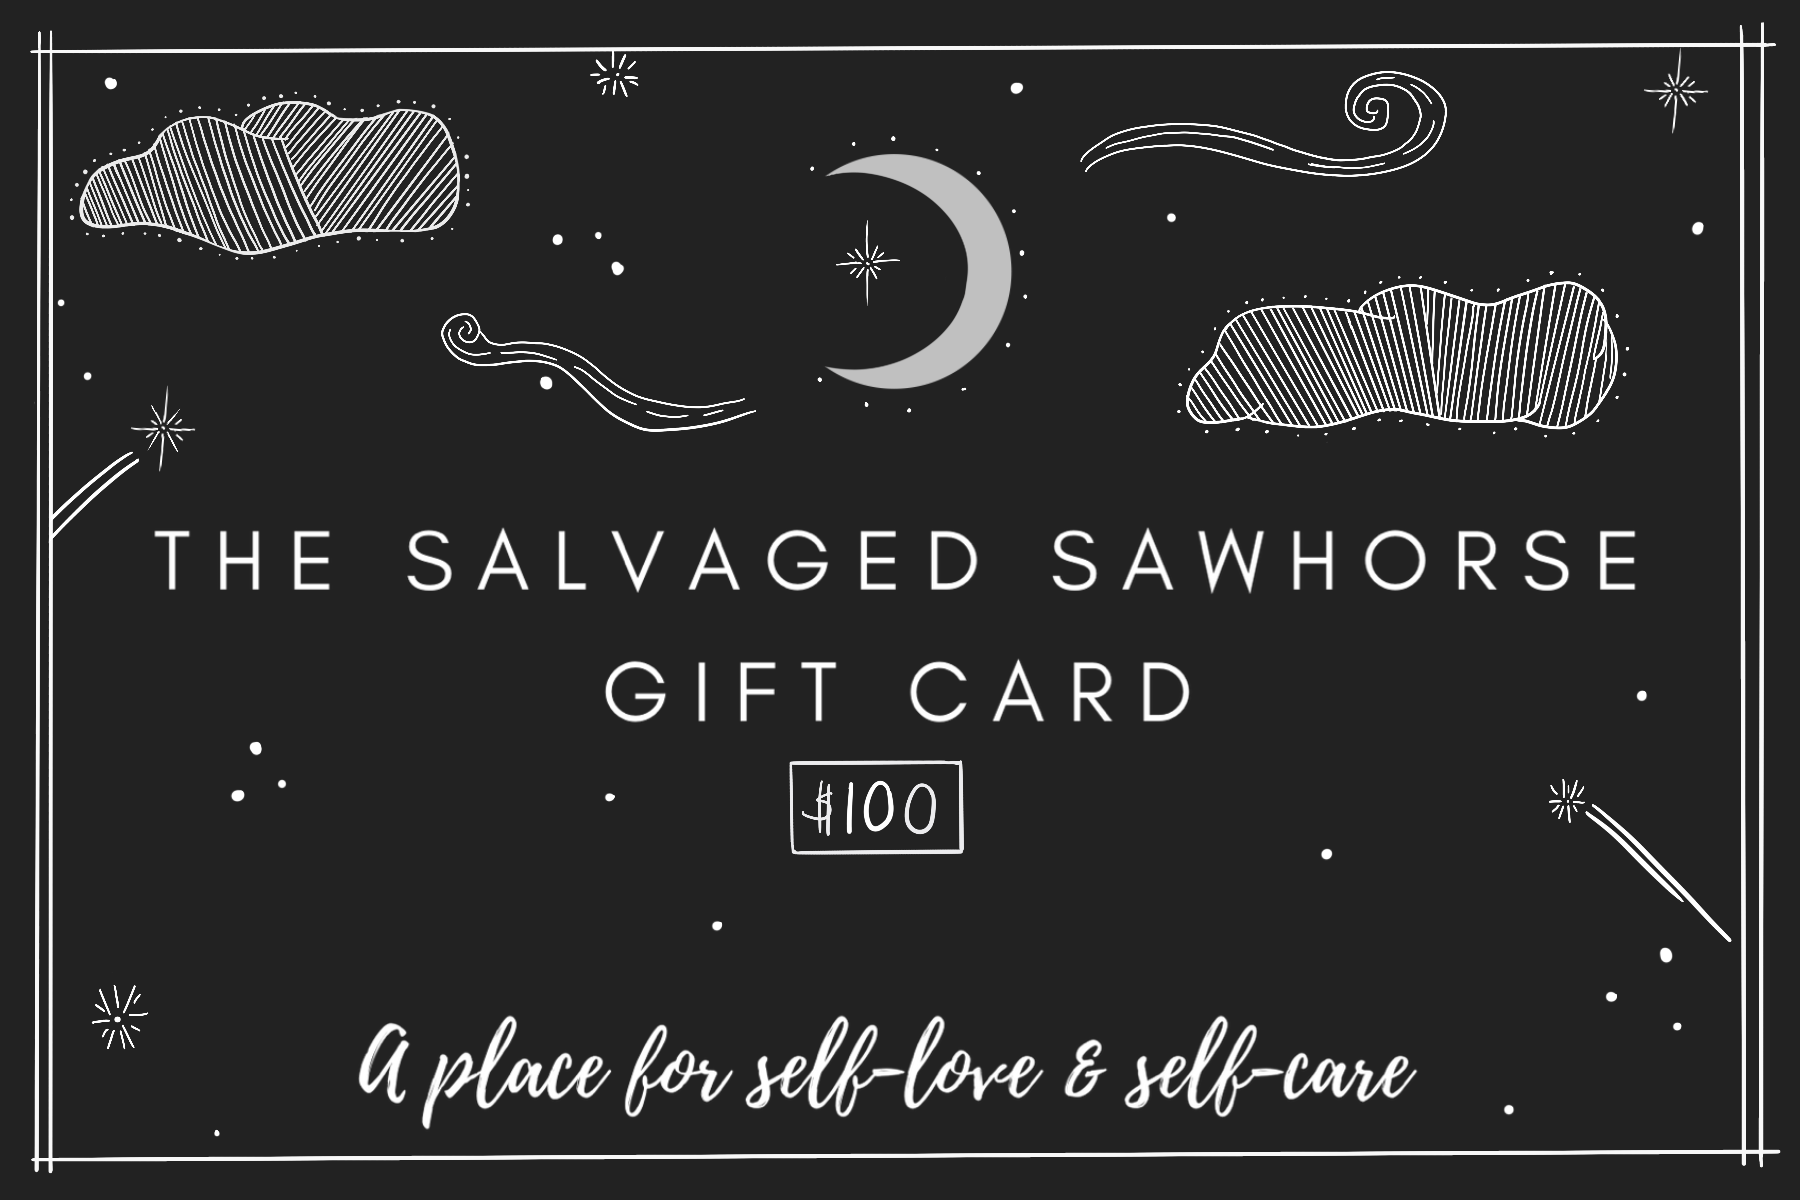 The Salvaged Sawhorse Gift Card